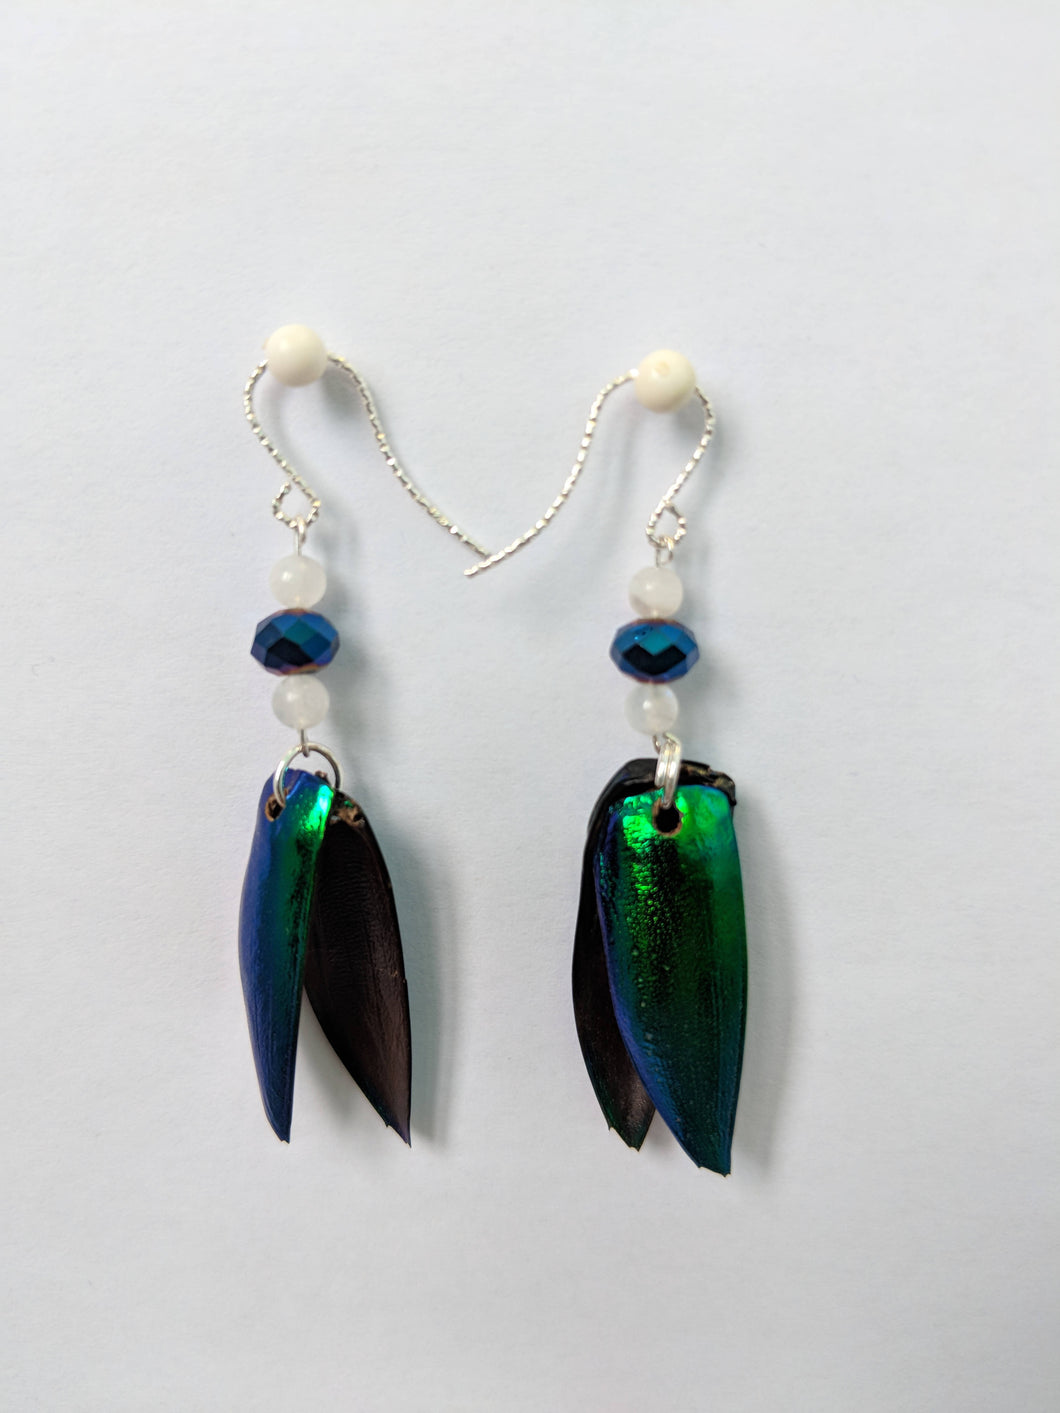 Real Jewel Beetle Earrings with Rainbow Moonstone